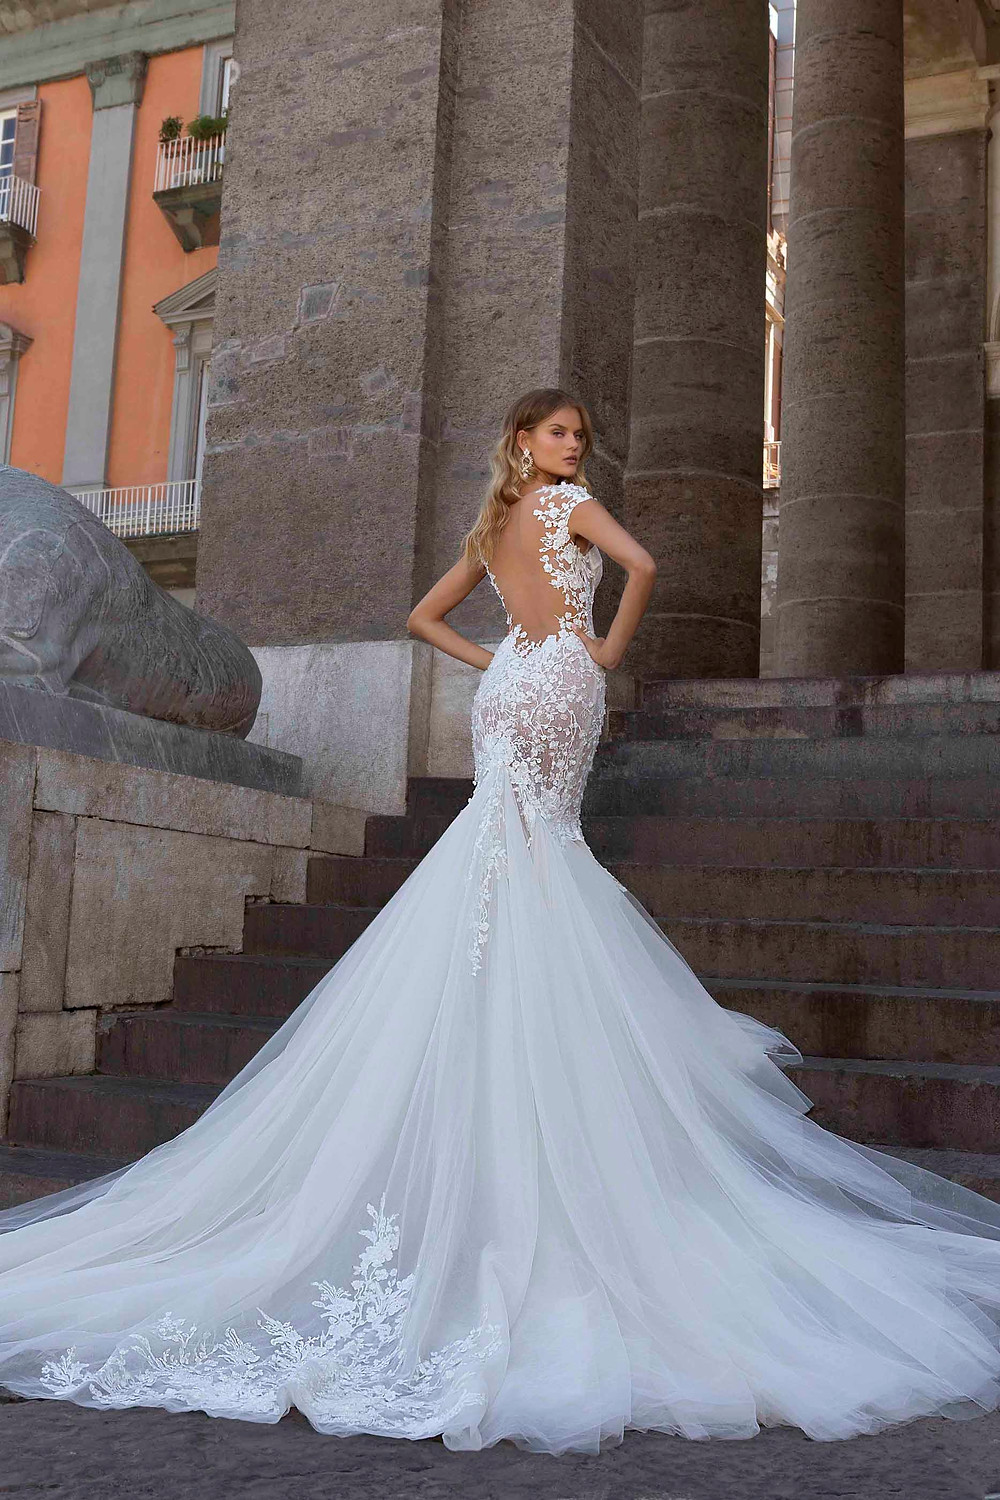 A Berta 2020 lace, mermaid wedding dress with tulle skirt and illusion back